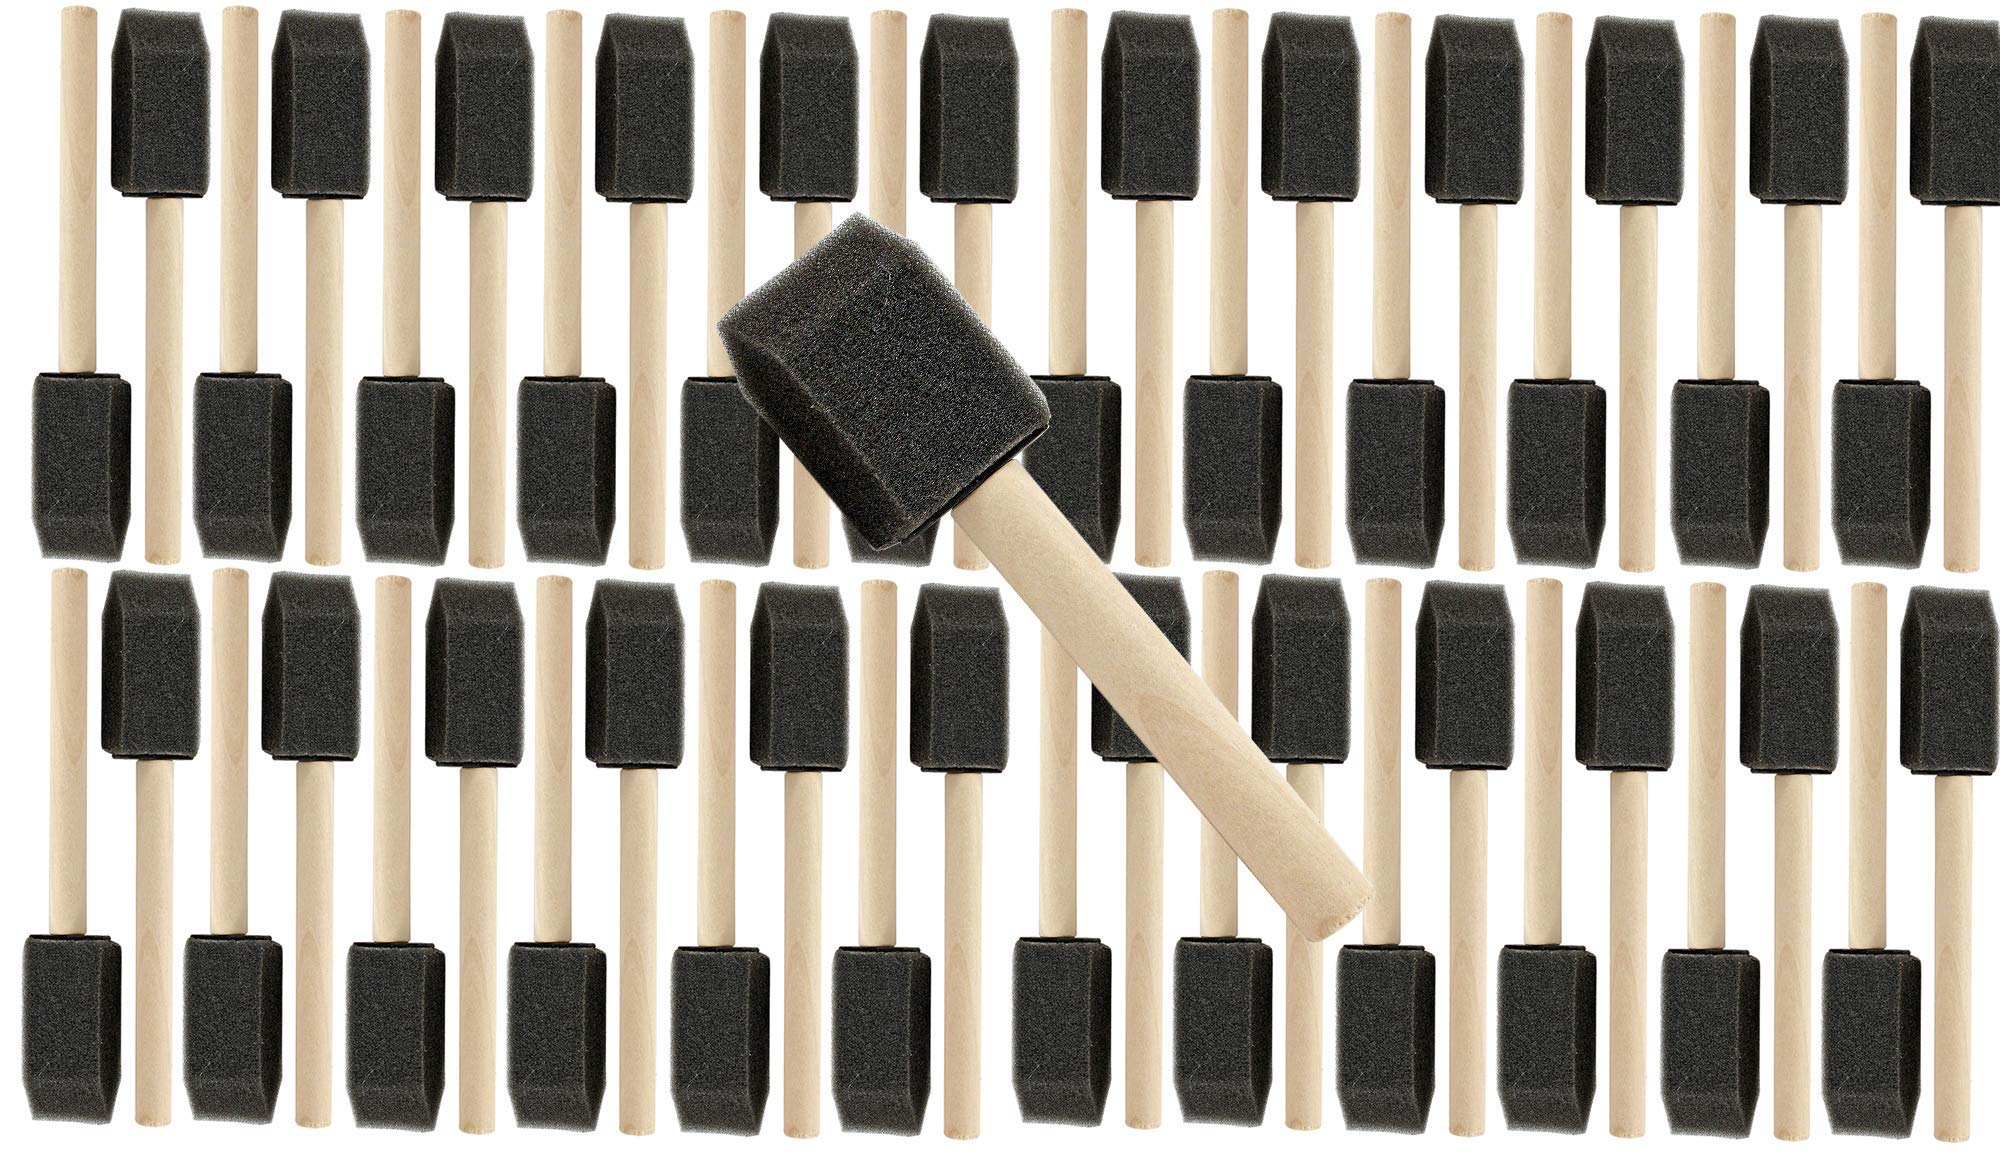 10 PK 1'' Wooden Handle Poly Foam Brushes 48 PC Set Great for Crafts, Touch ups, Art, Paints, Stains by ProGrade Supplies